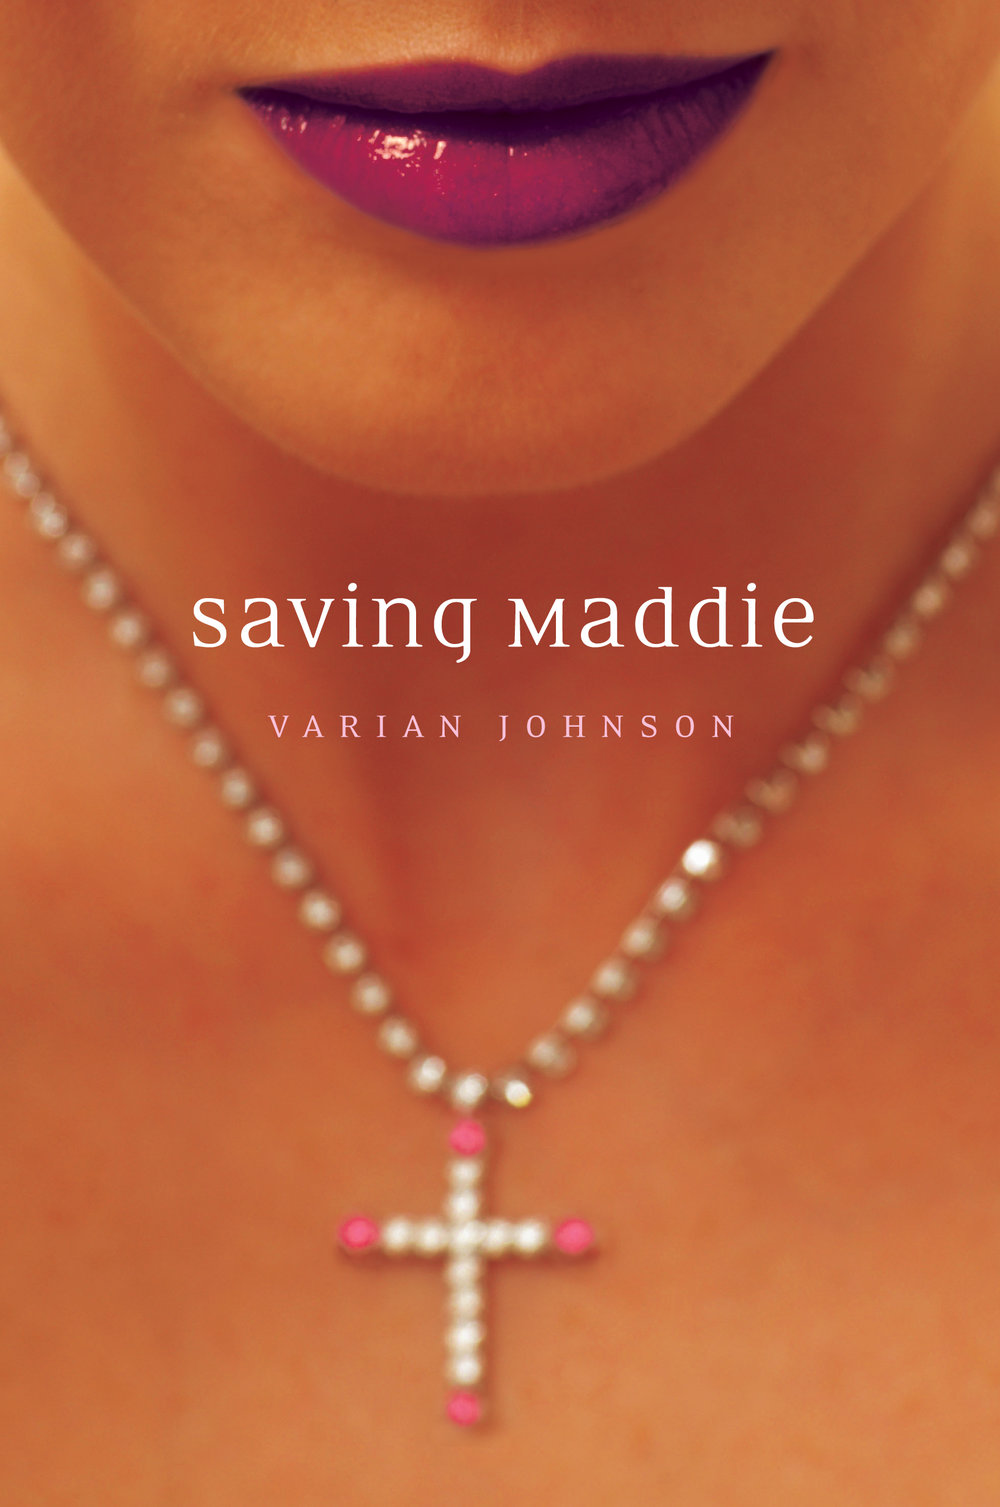 varian-johnson-saving-maddie.jpg